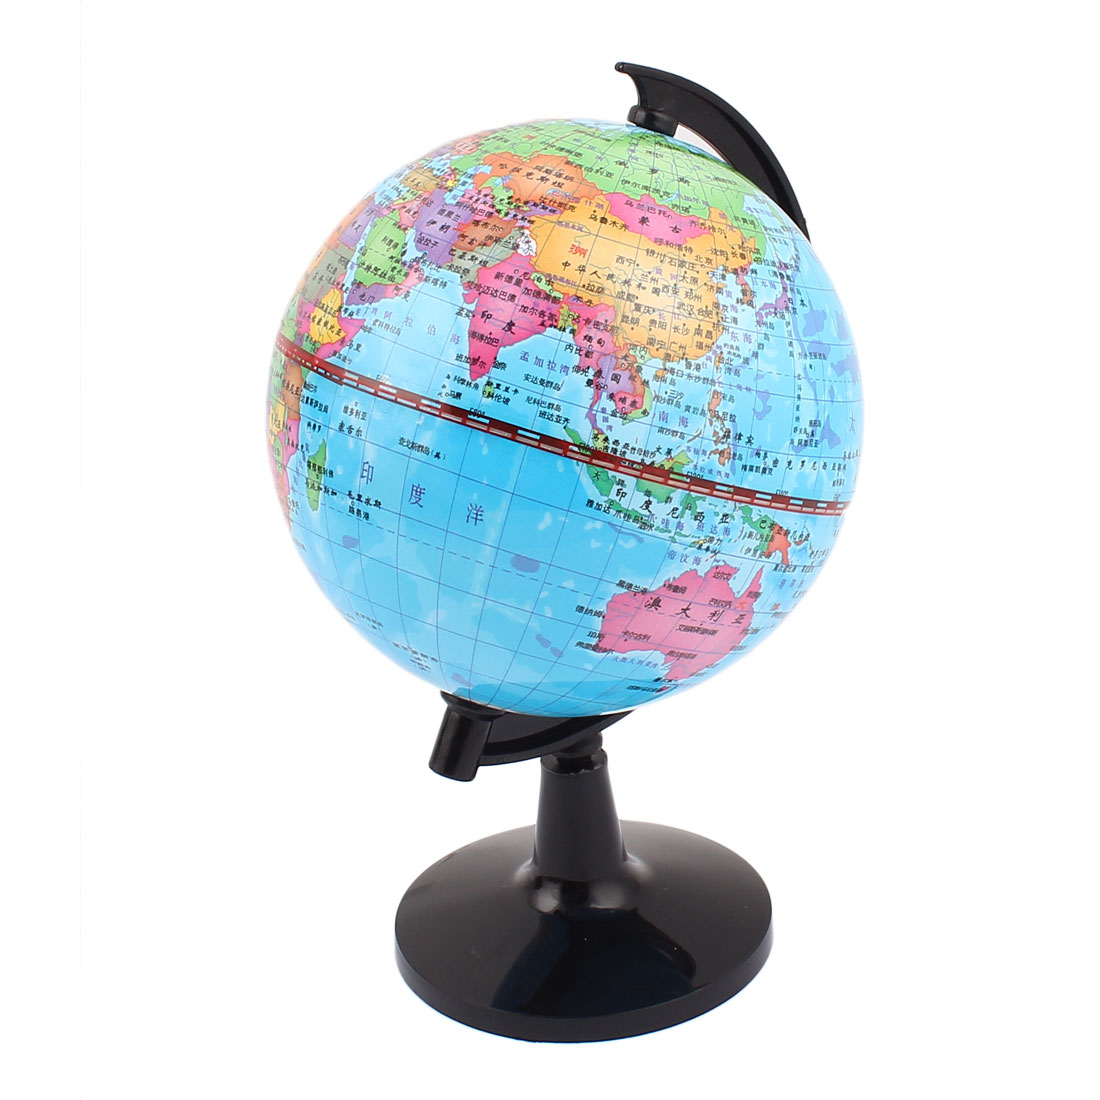 "World Map Globe Toy Foam Earth Ball Geography Educational 4.2"" Dia"